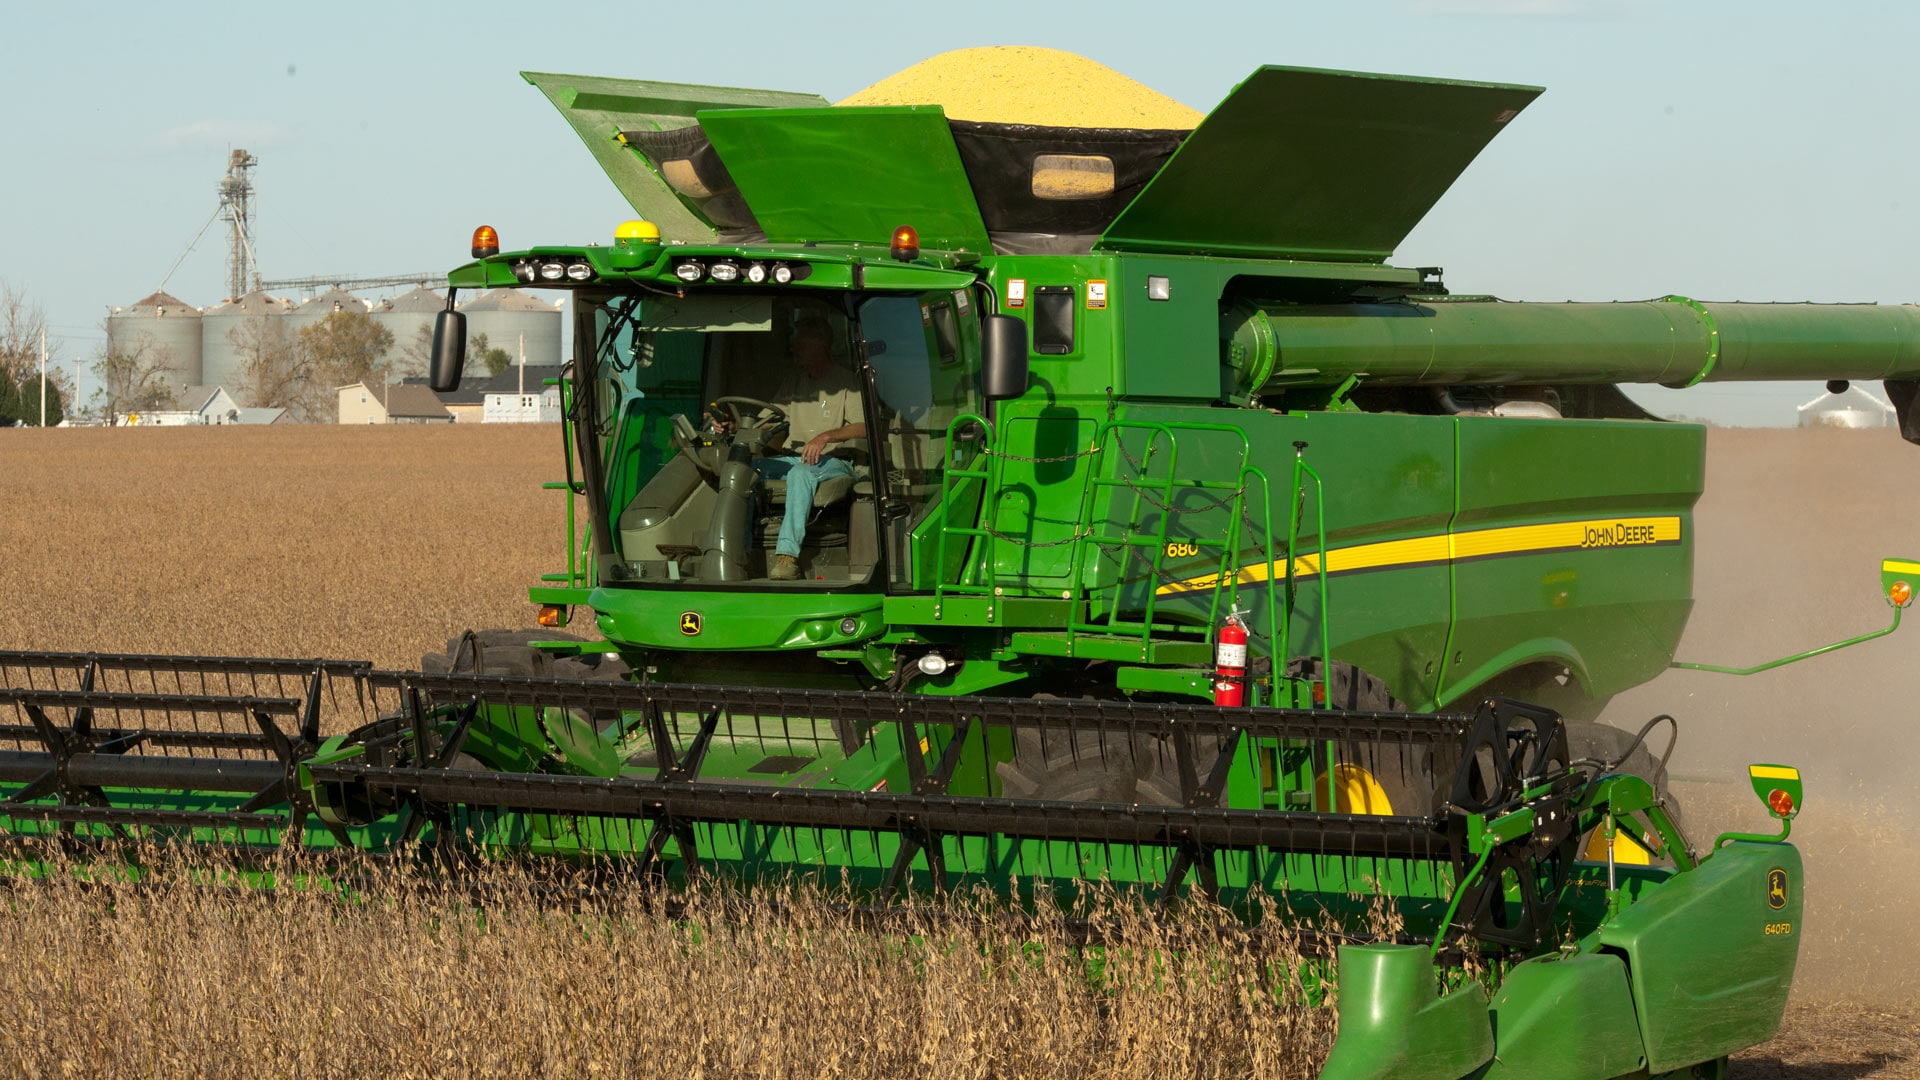 Combine with 400-Bushel Grain Tank moving through crops